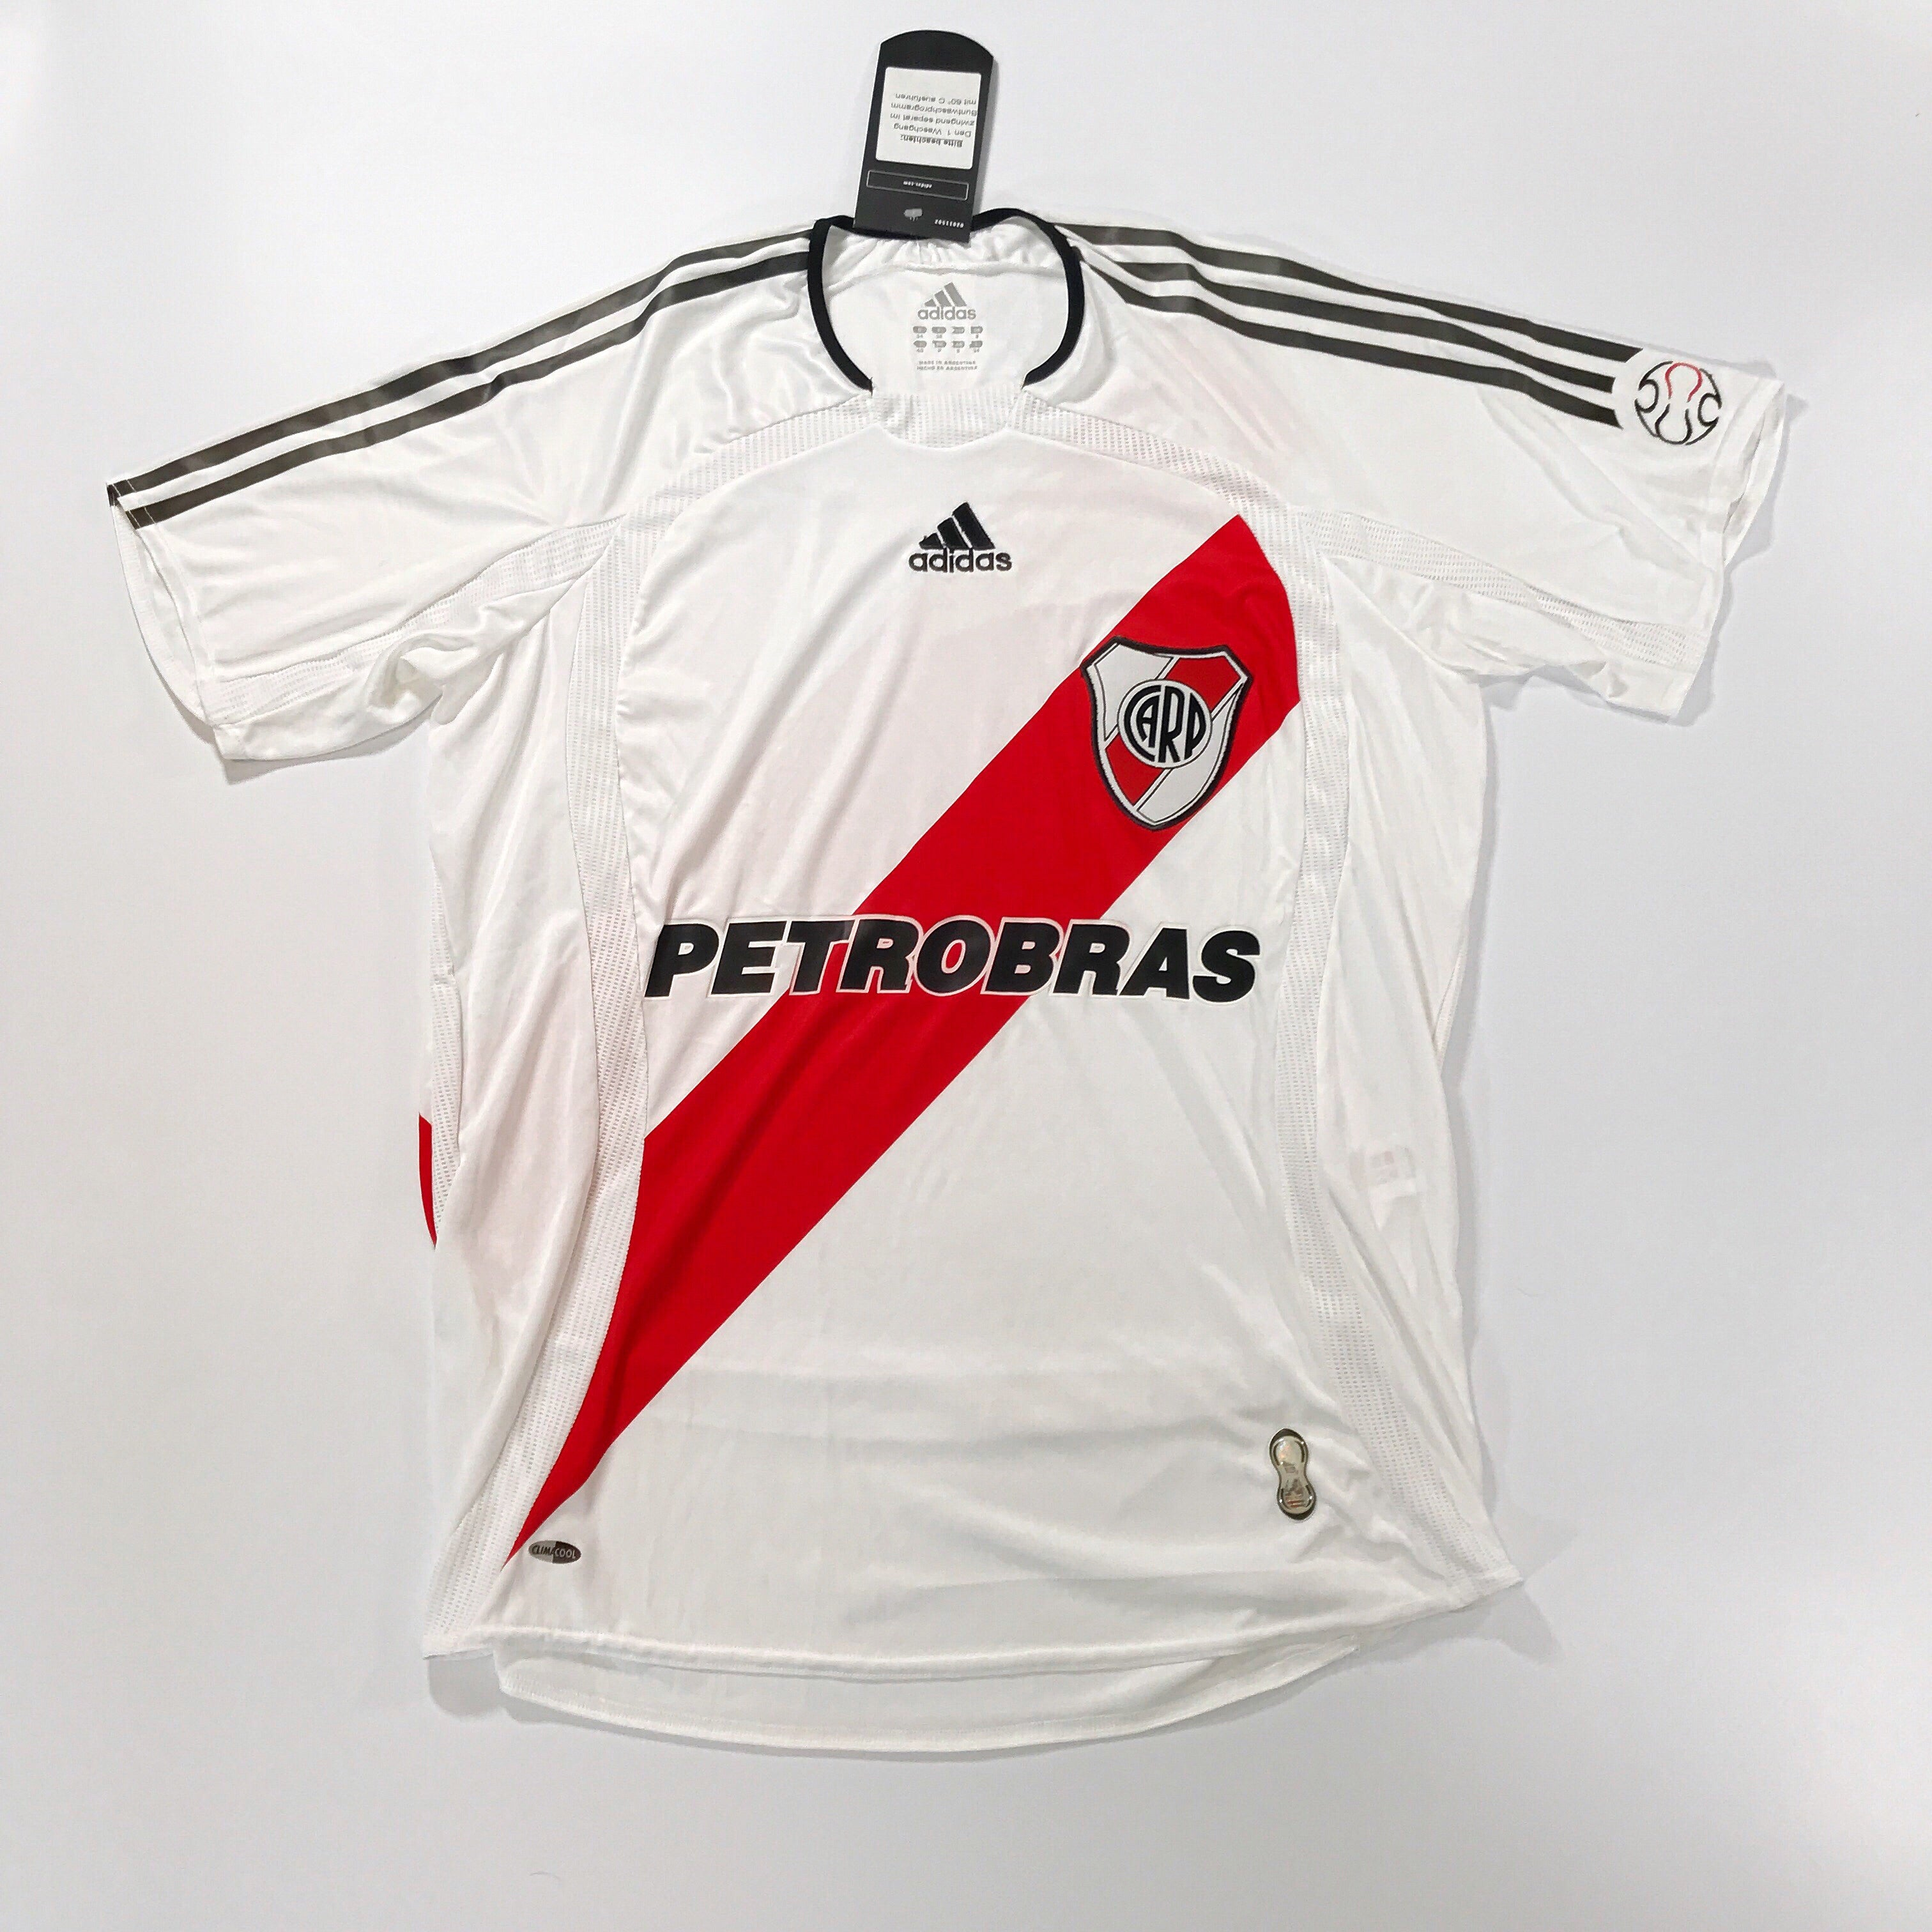 River Plate 2006-2007 Adidas Home Shirt Small BNWT